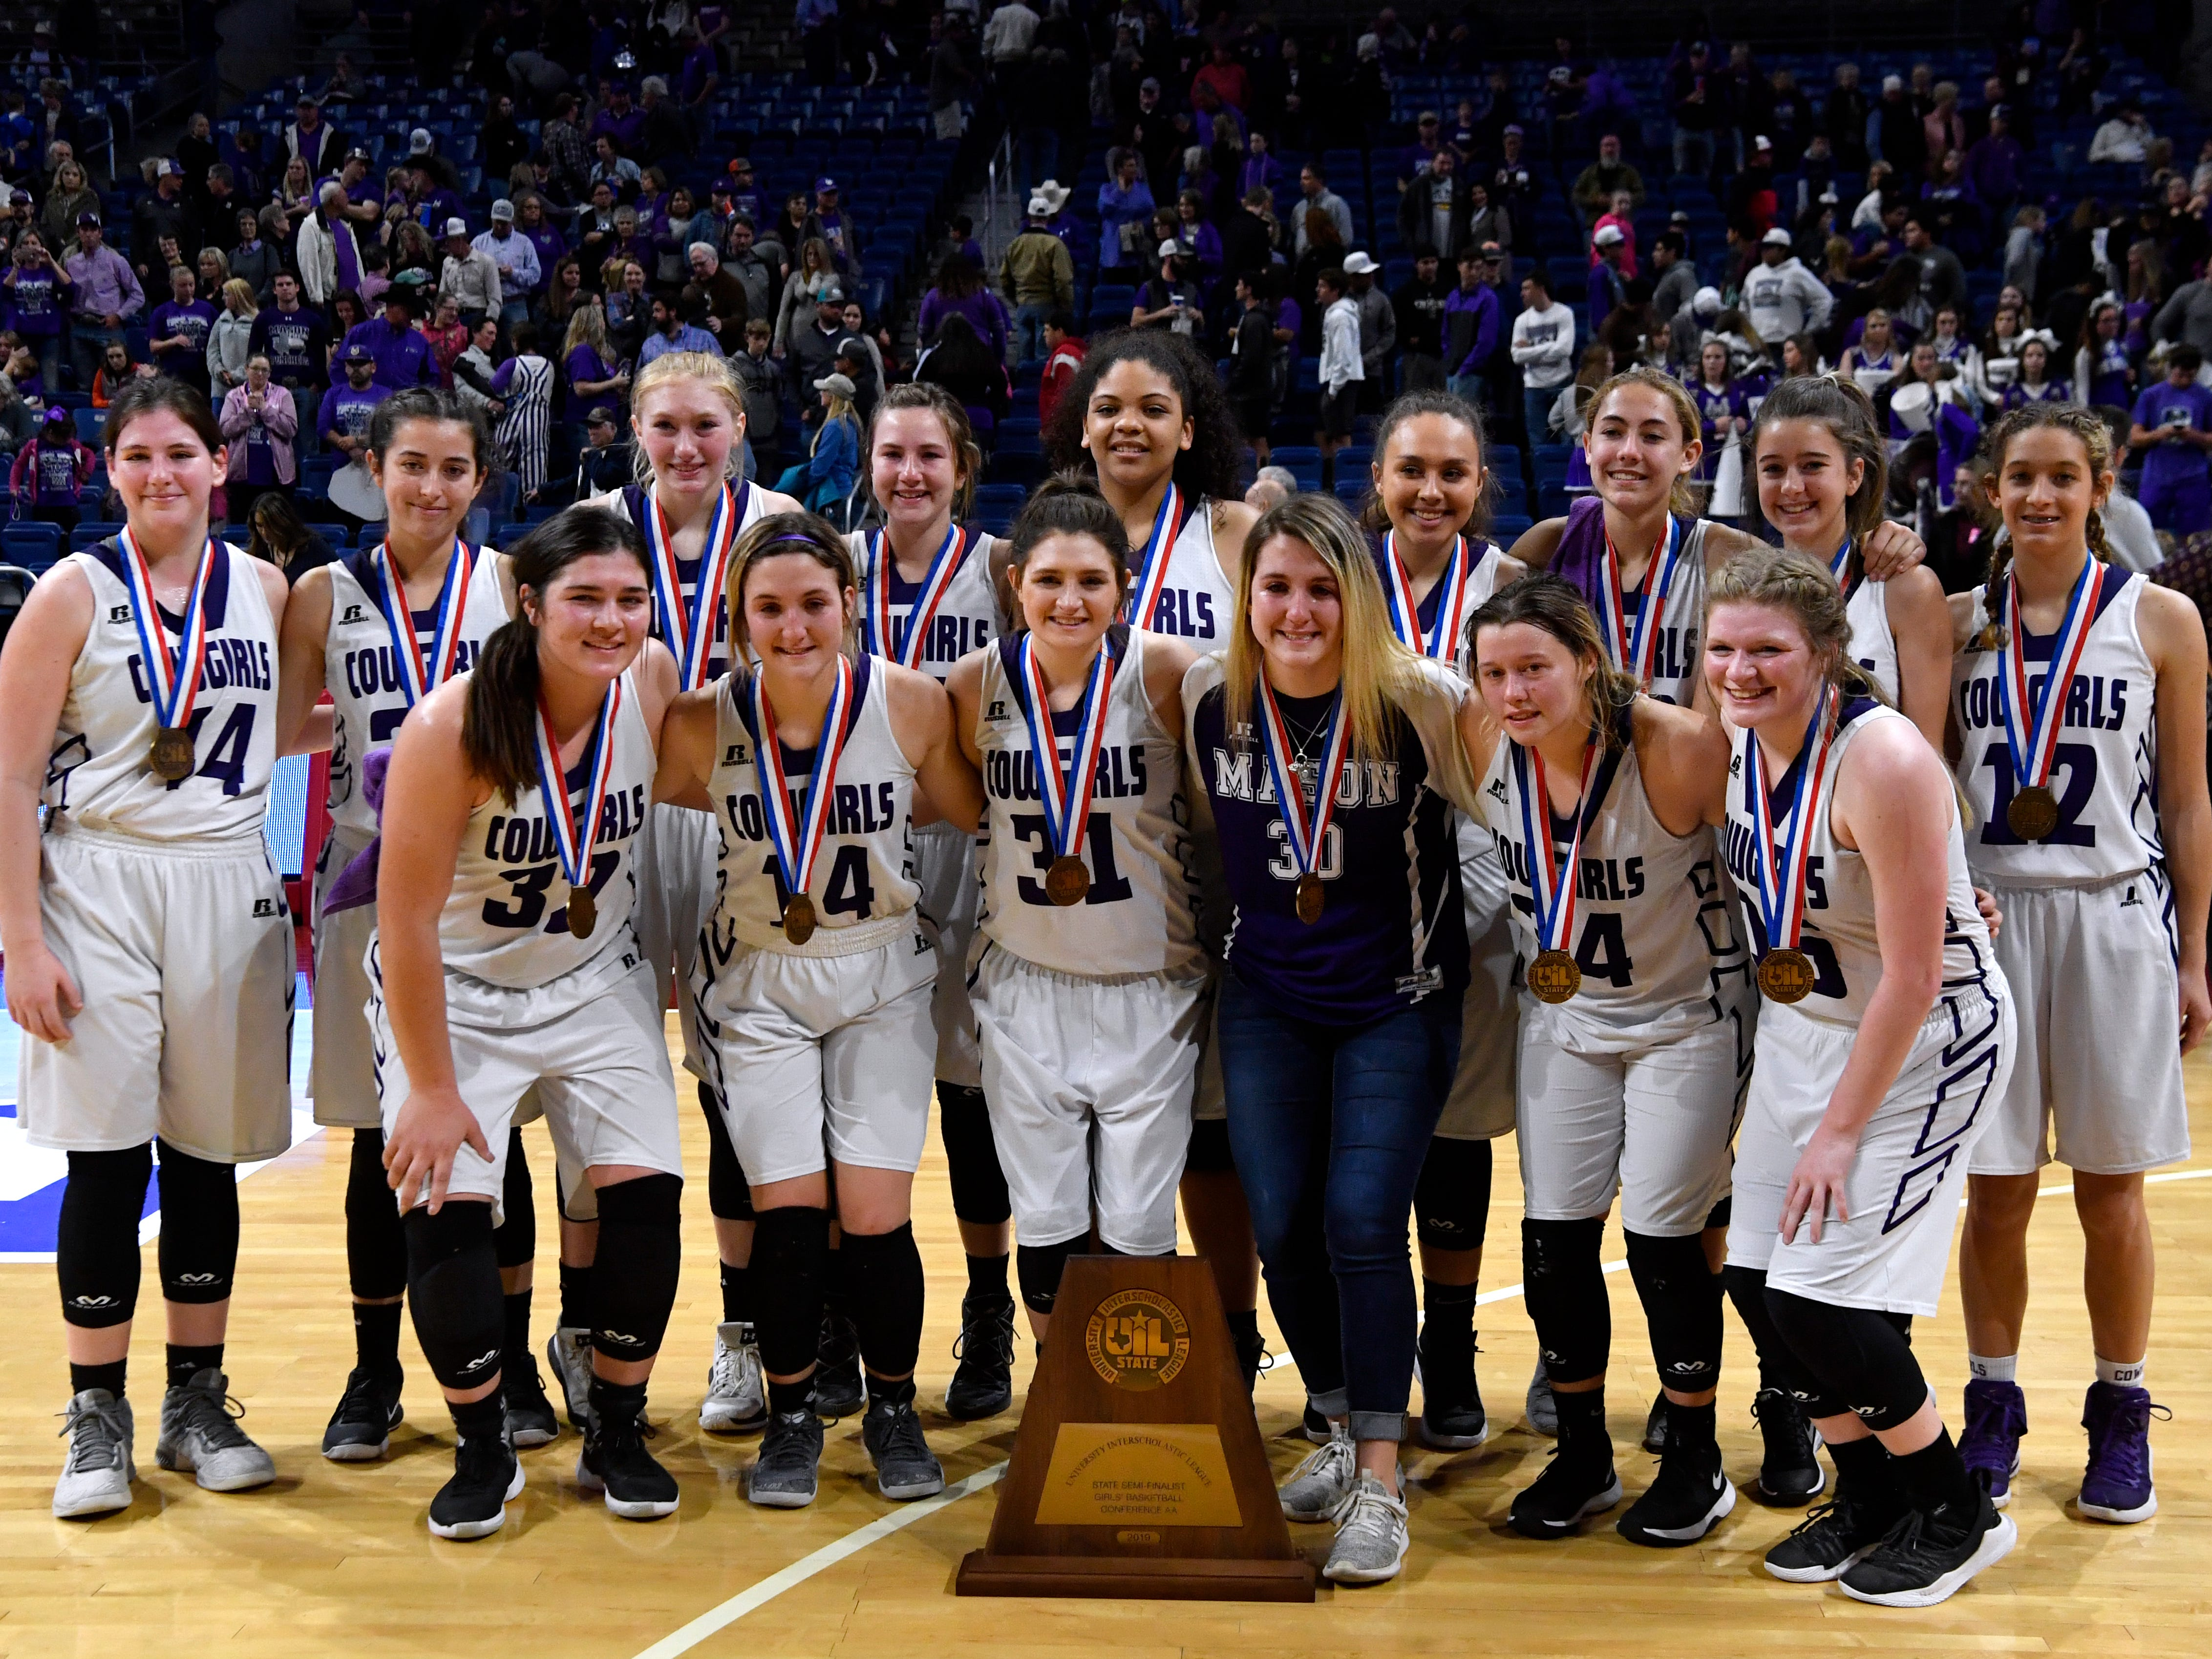 The Mason Cowgirls pose for a group photo with their Class 2A semifinal trophy Friday March 1, 2019 in San Antonio's Alamodome. The Cowgirls lost to the Grapeland Sandies, 61-54